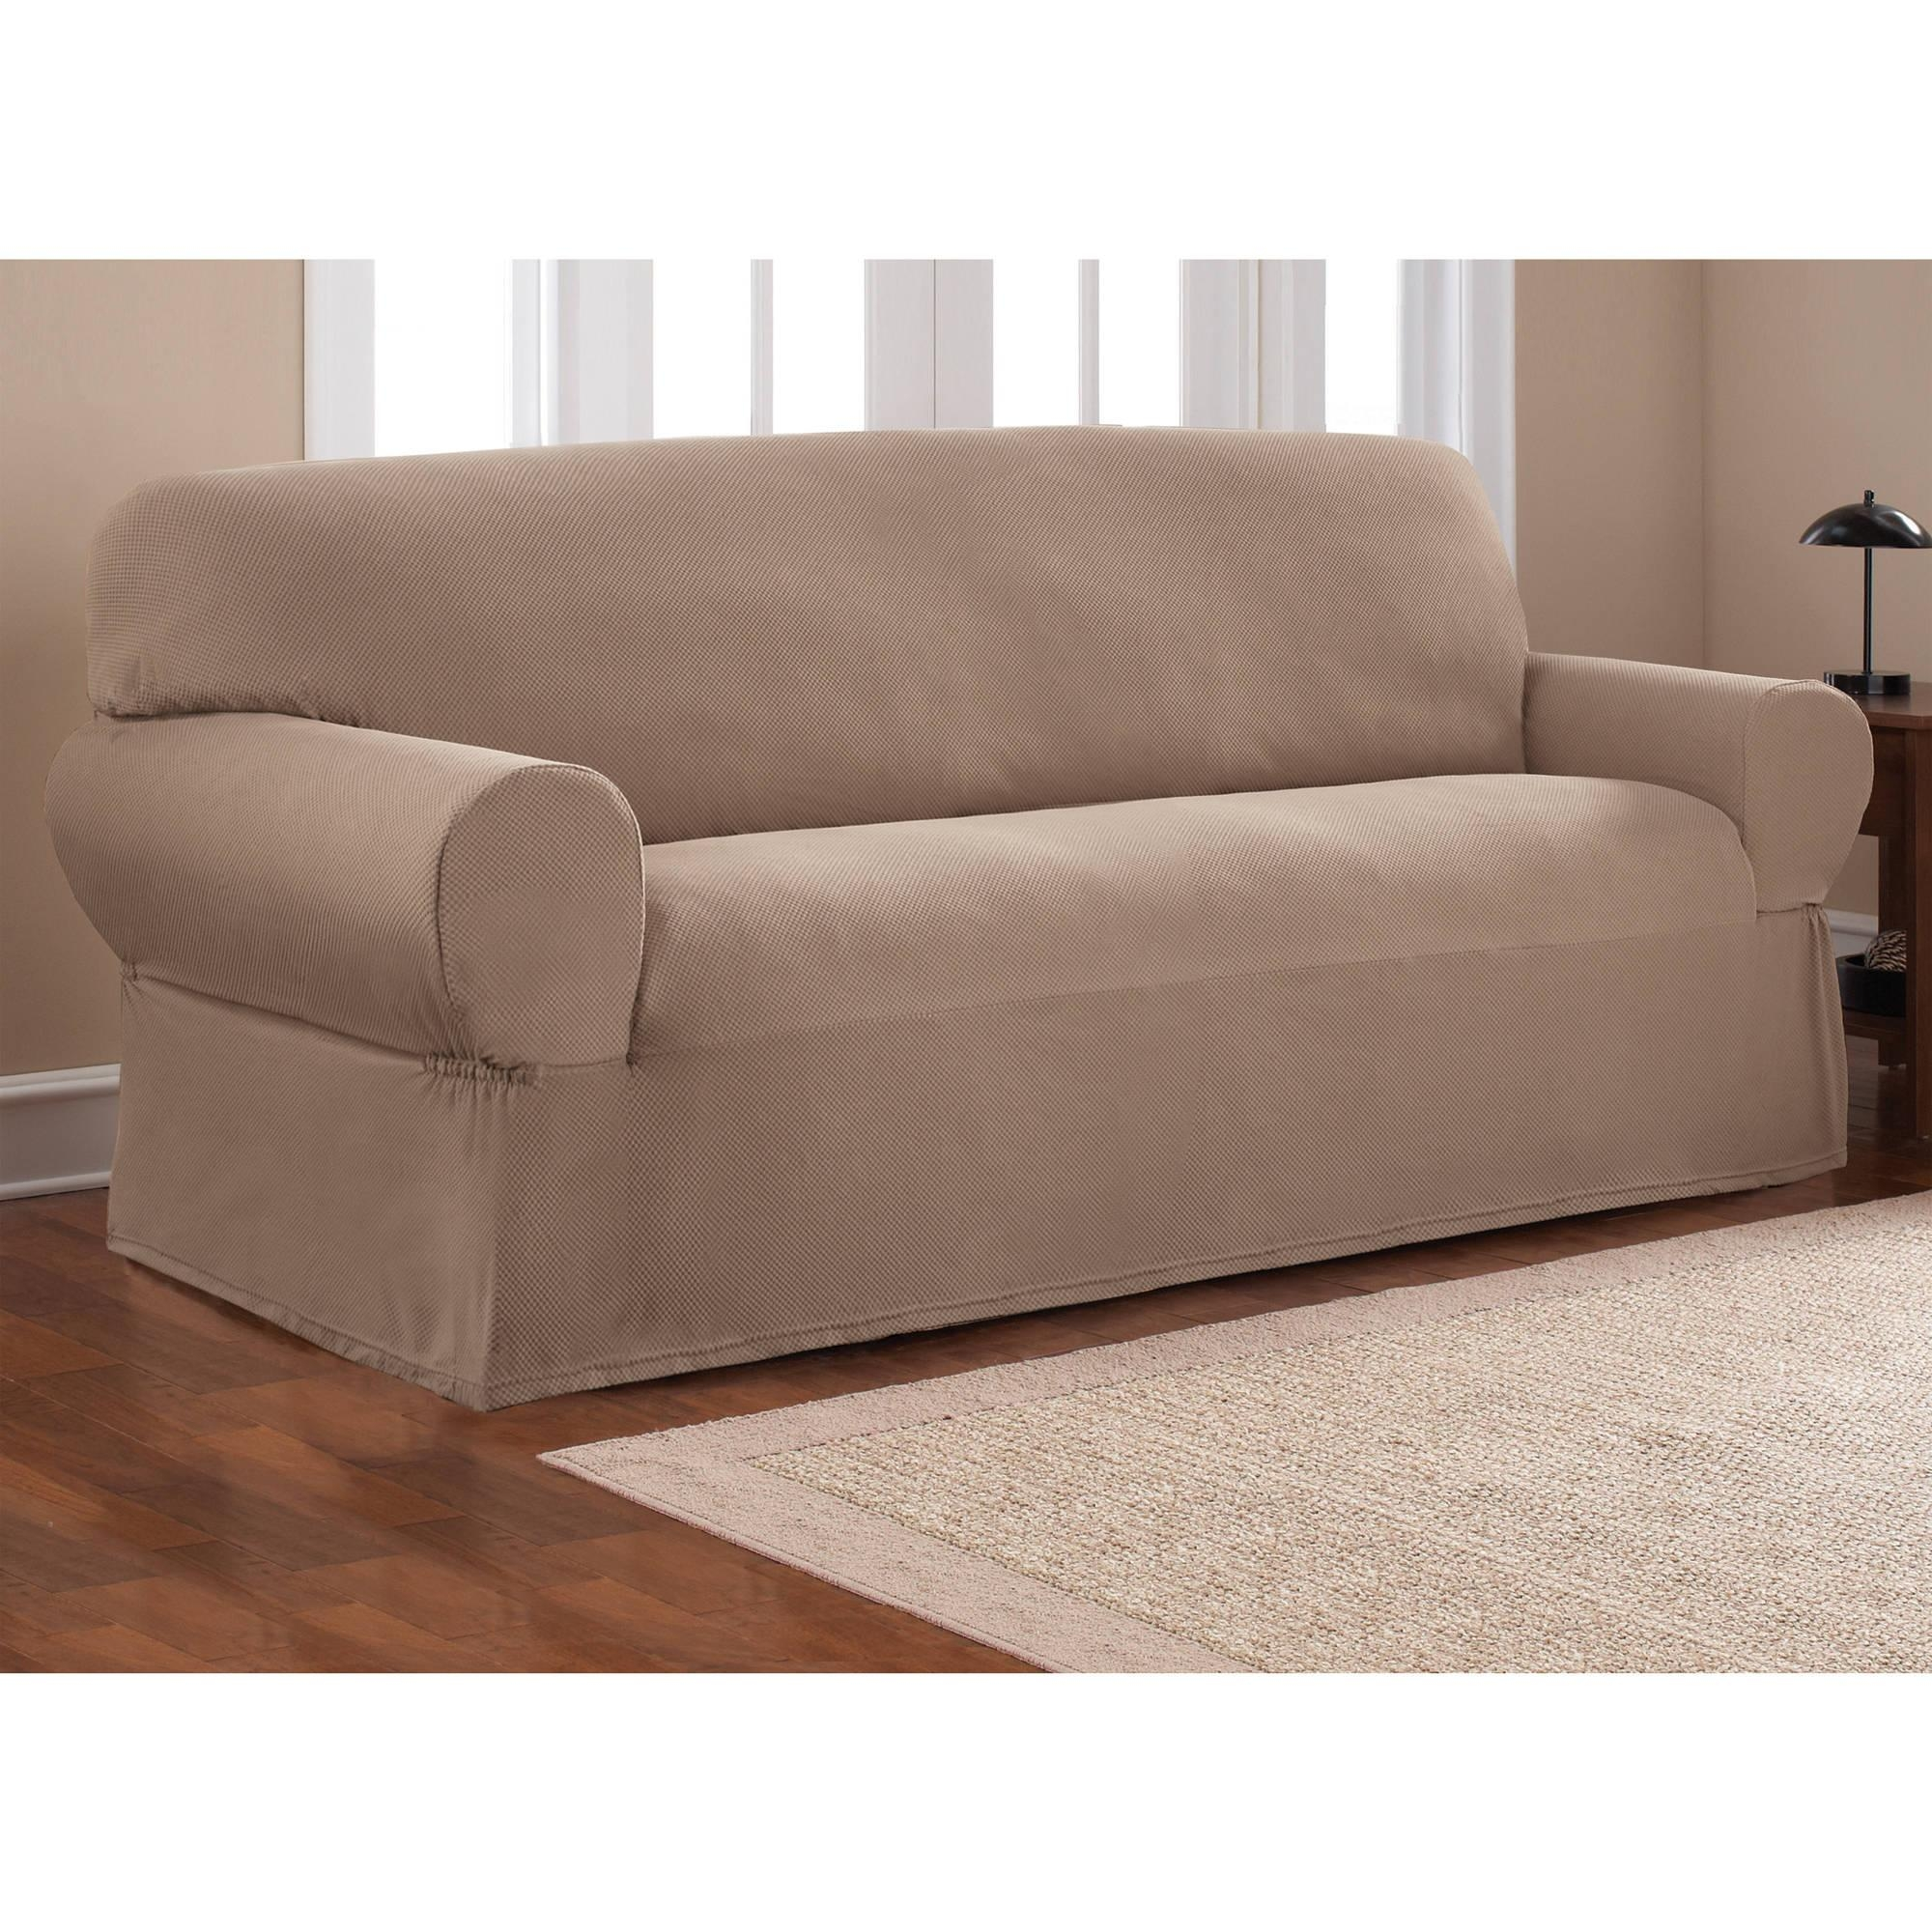 Mainstays 1 Piece Stretch Fabric Sofa Slipcover – Walmart Intended For Canvas Sofas Covers (View 5 of 20)